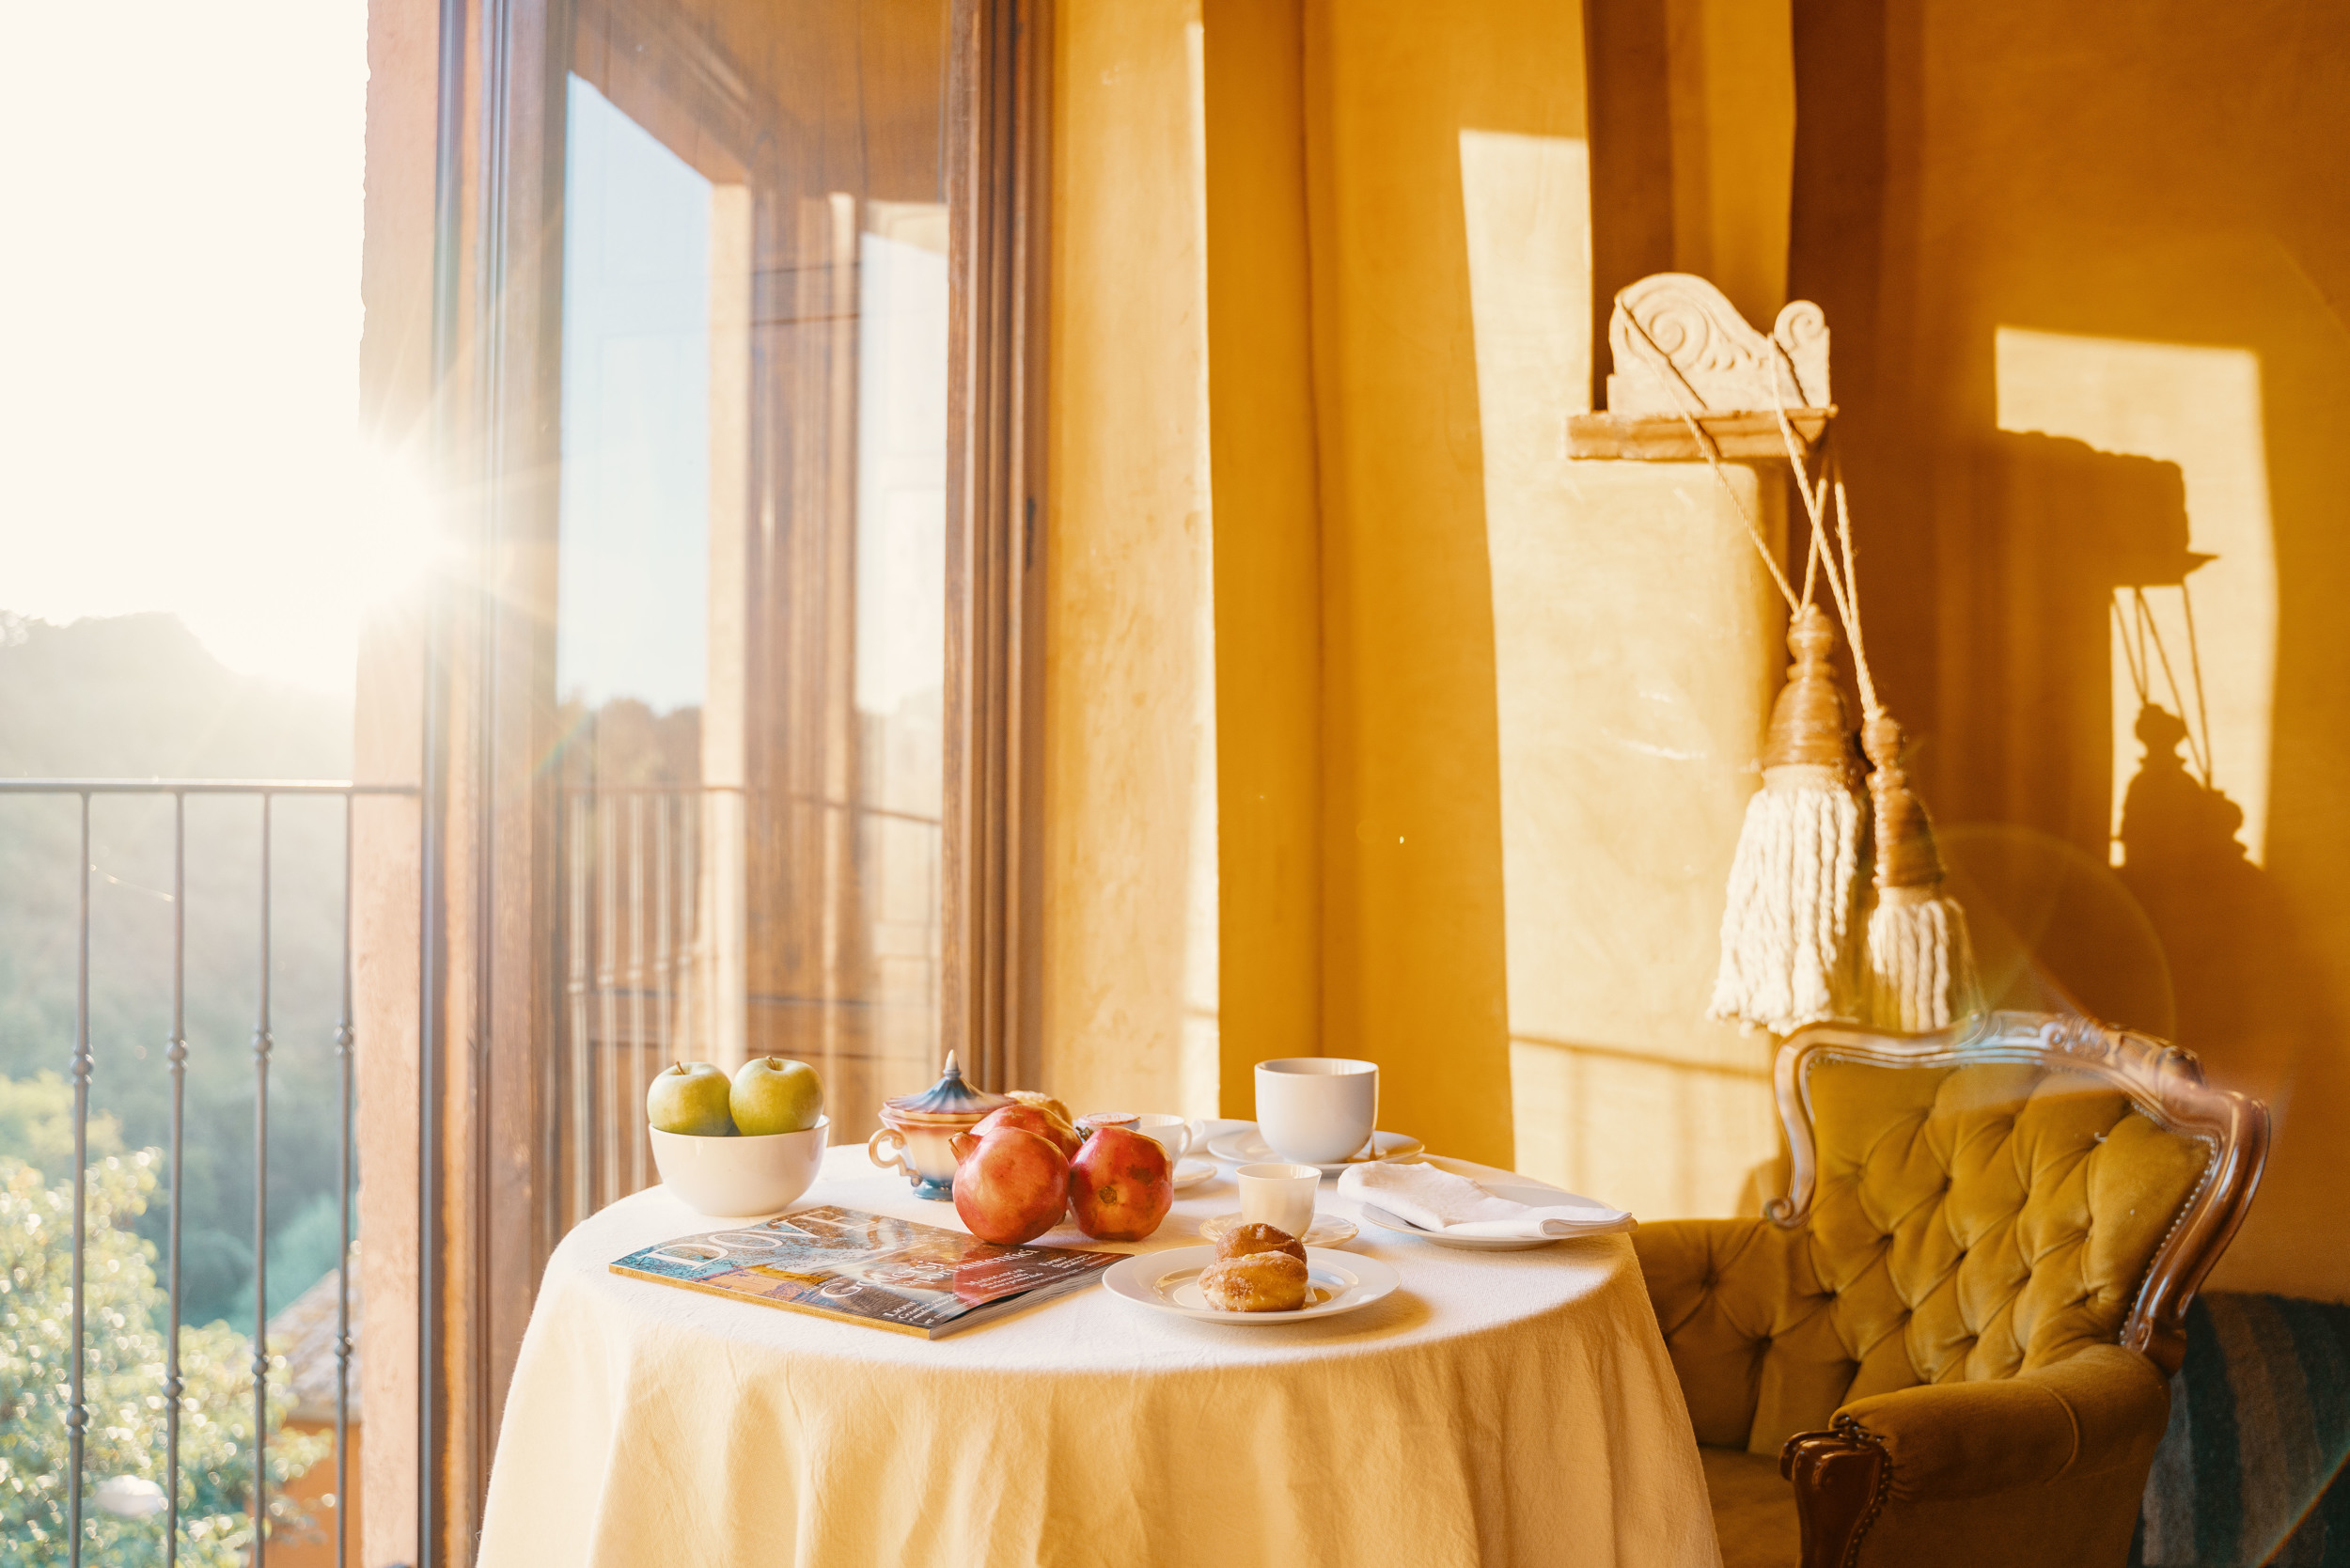 Sunny view of a breakfast table with fruits and croissants.